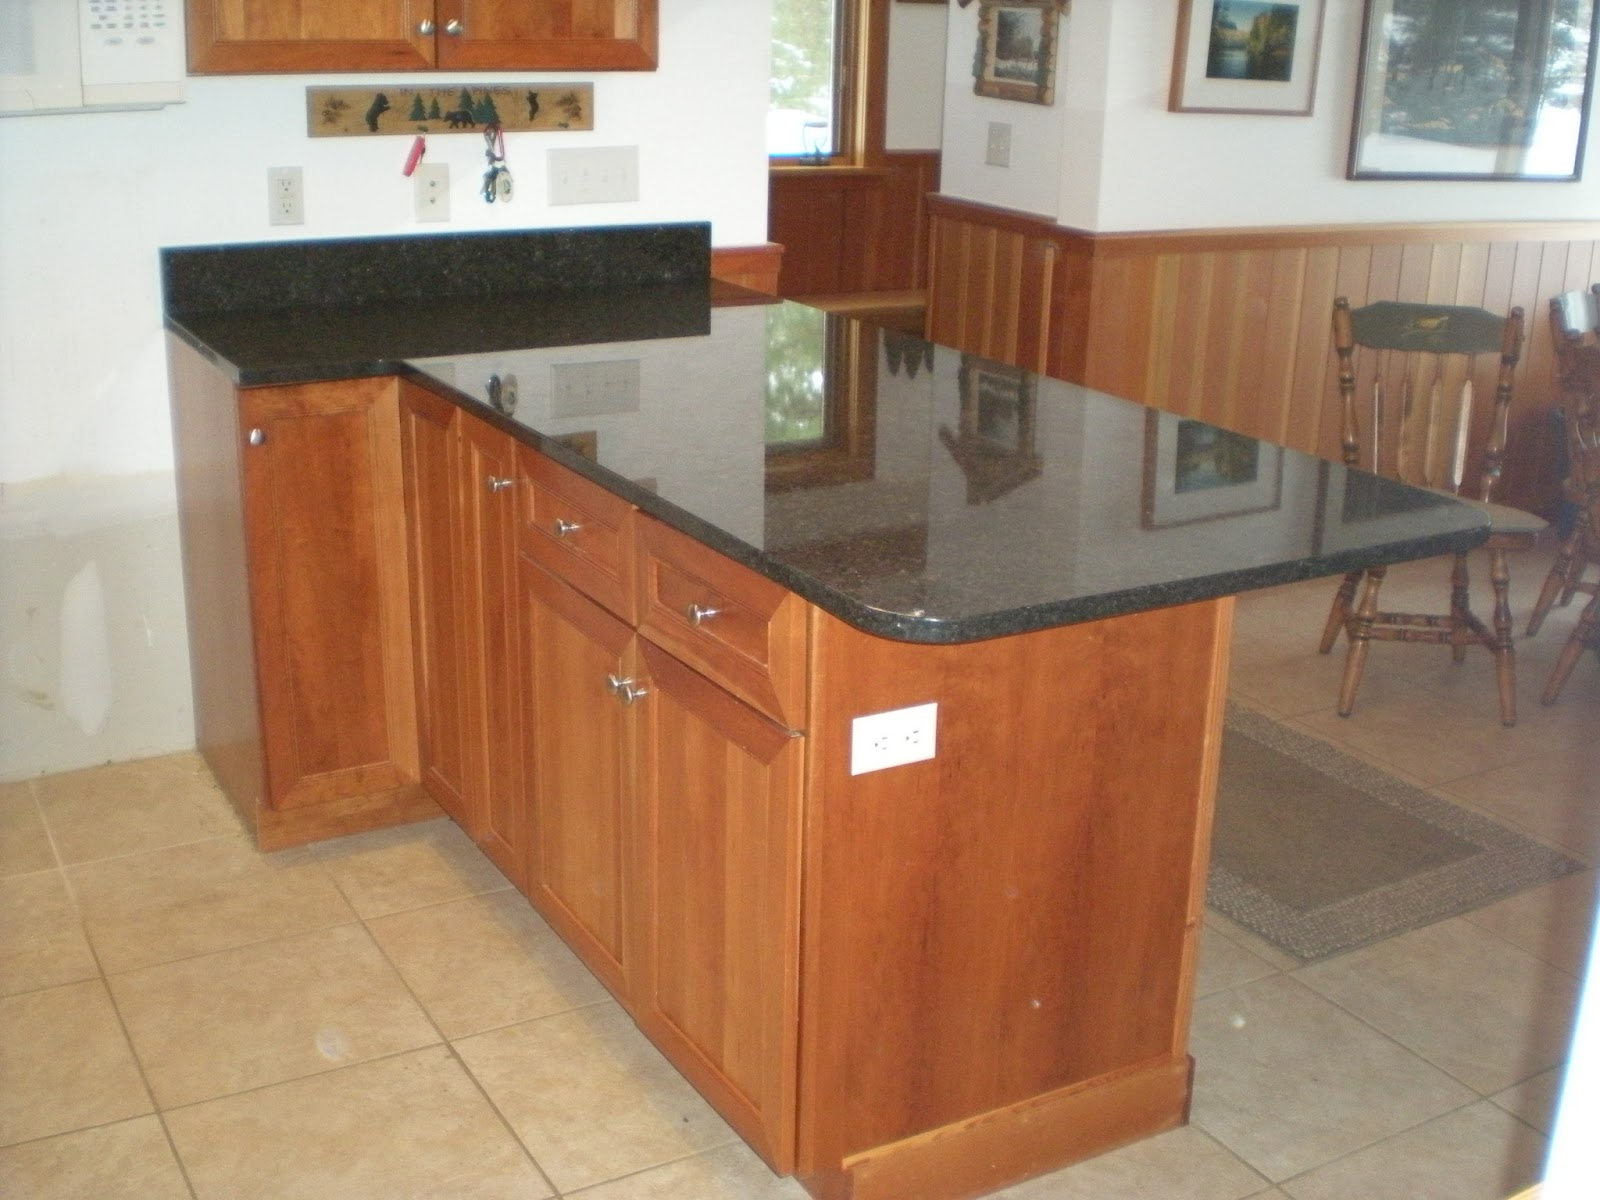 inspirations pure incredible quartz and kitchen best discount size also price like granite river countertop countertops on full ideas black of sale for gray white top marble look that mn